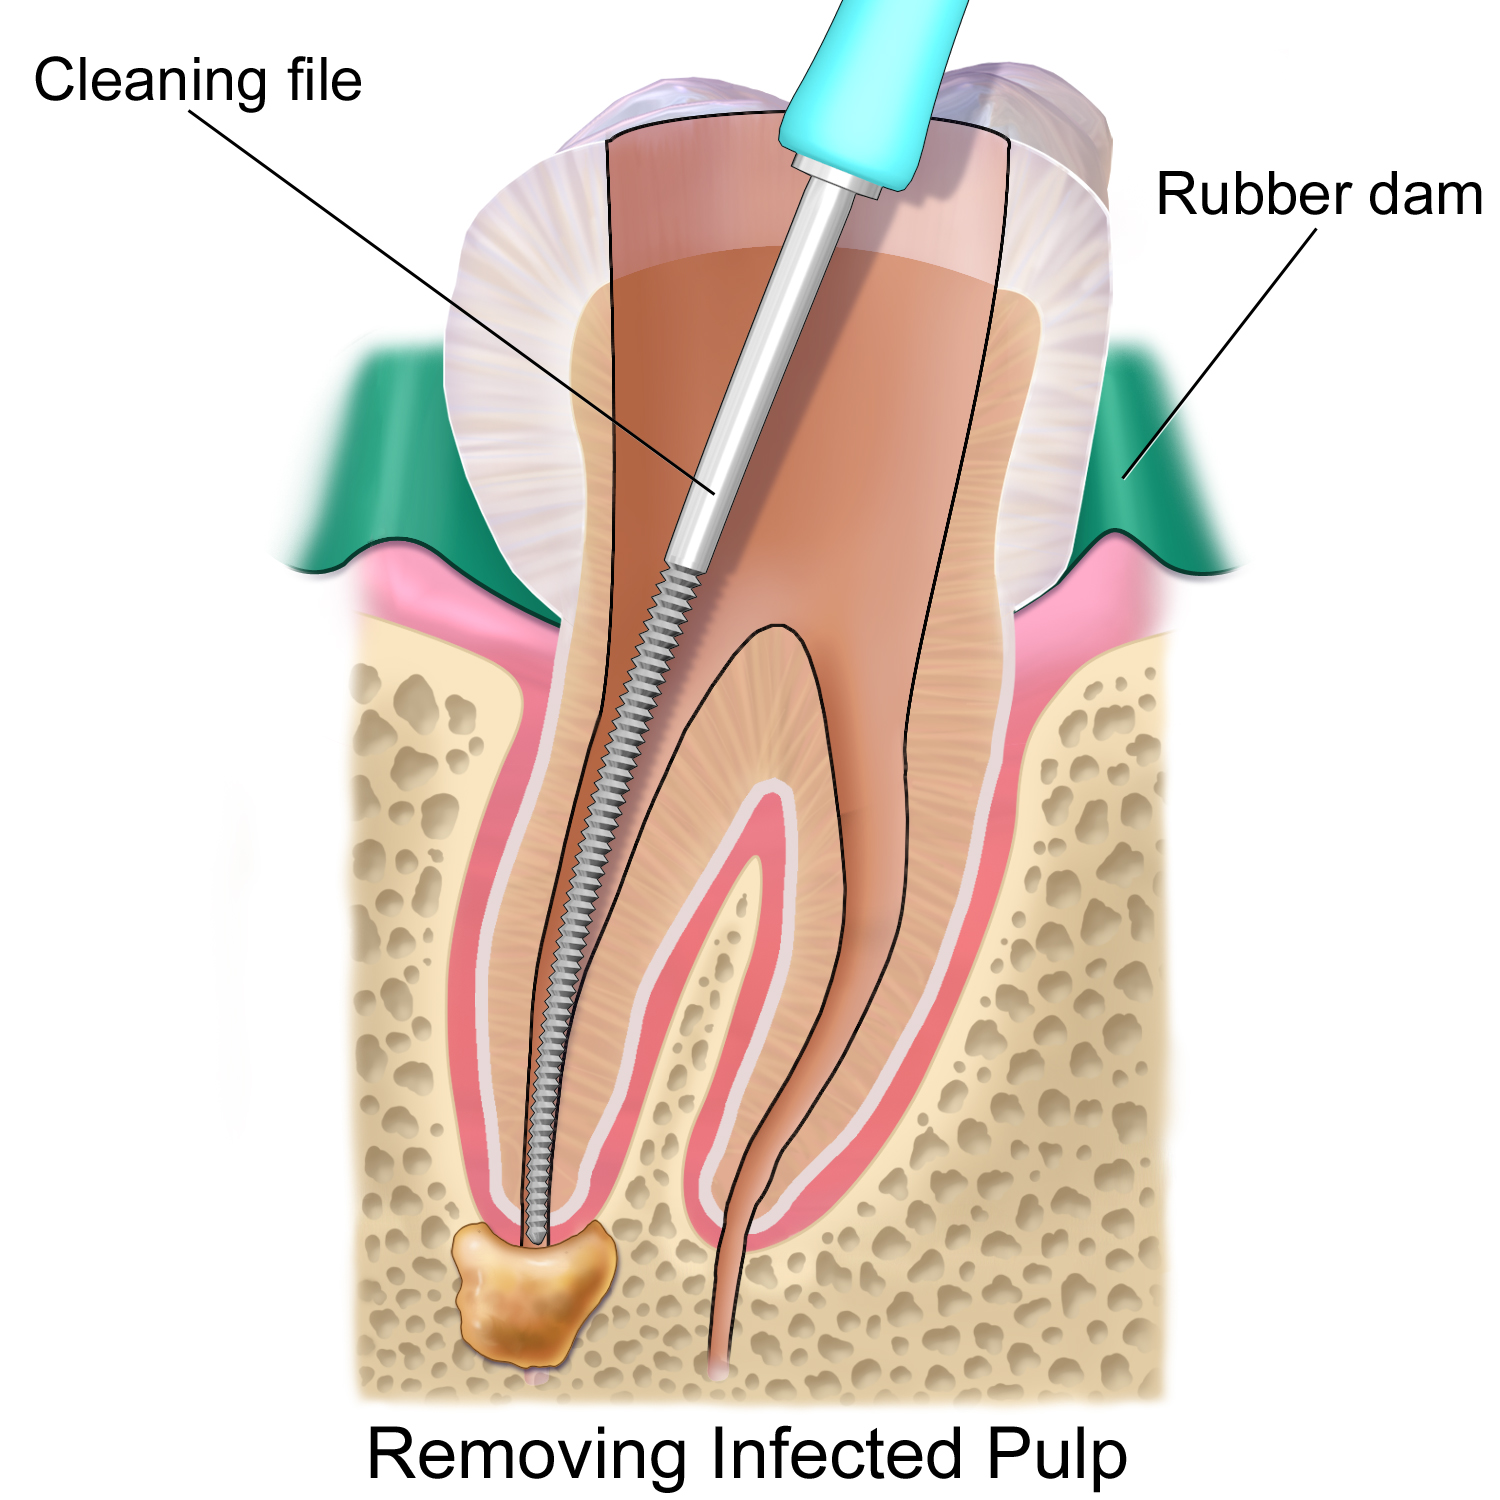 Root canal treatment - Wikipedia